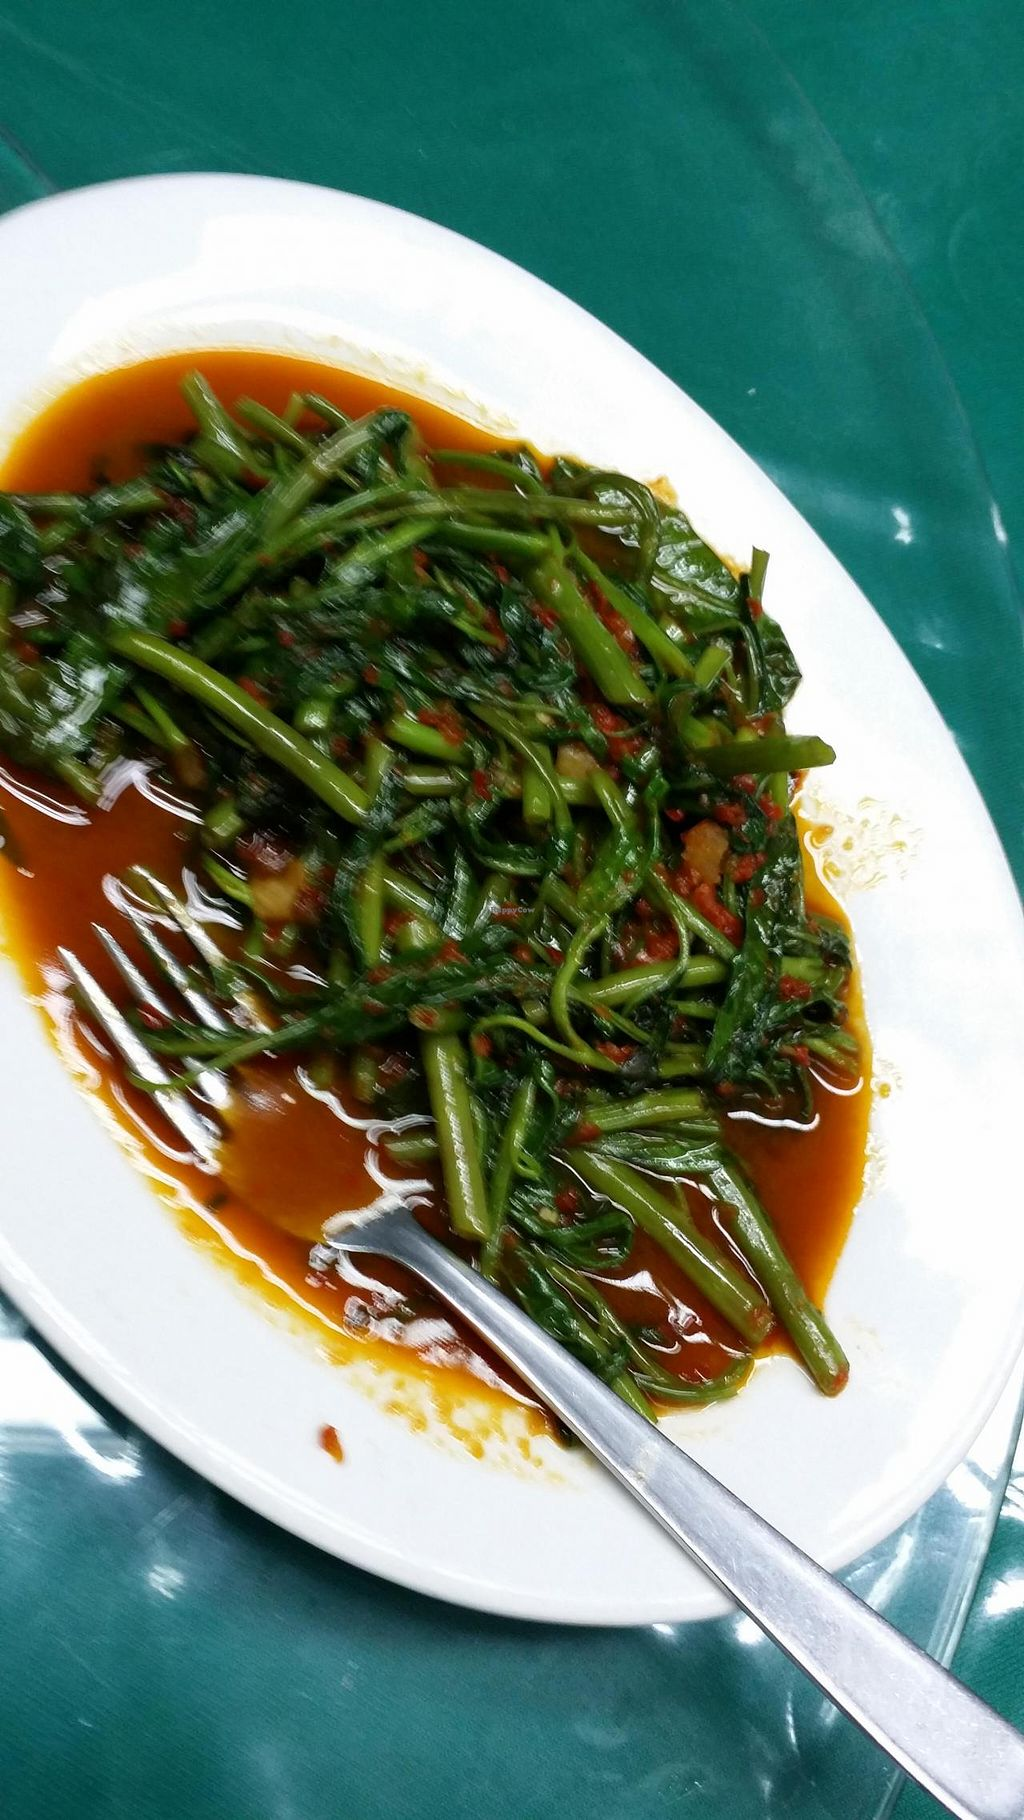 """Photo of Xin An Vegetarian Cafe  by <a href=""""/members/profile/walter007"""">walter007</a> <br/>Food <br/> July 23, 2014  - <a href='/contact/abuse/image/6079/74769'>Report</a>"""